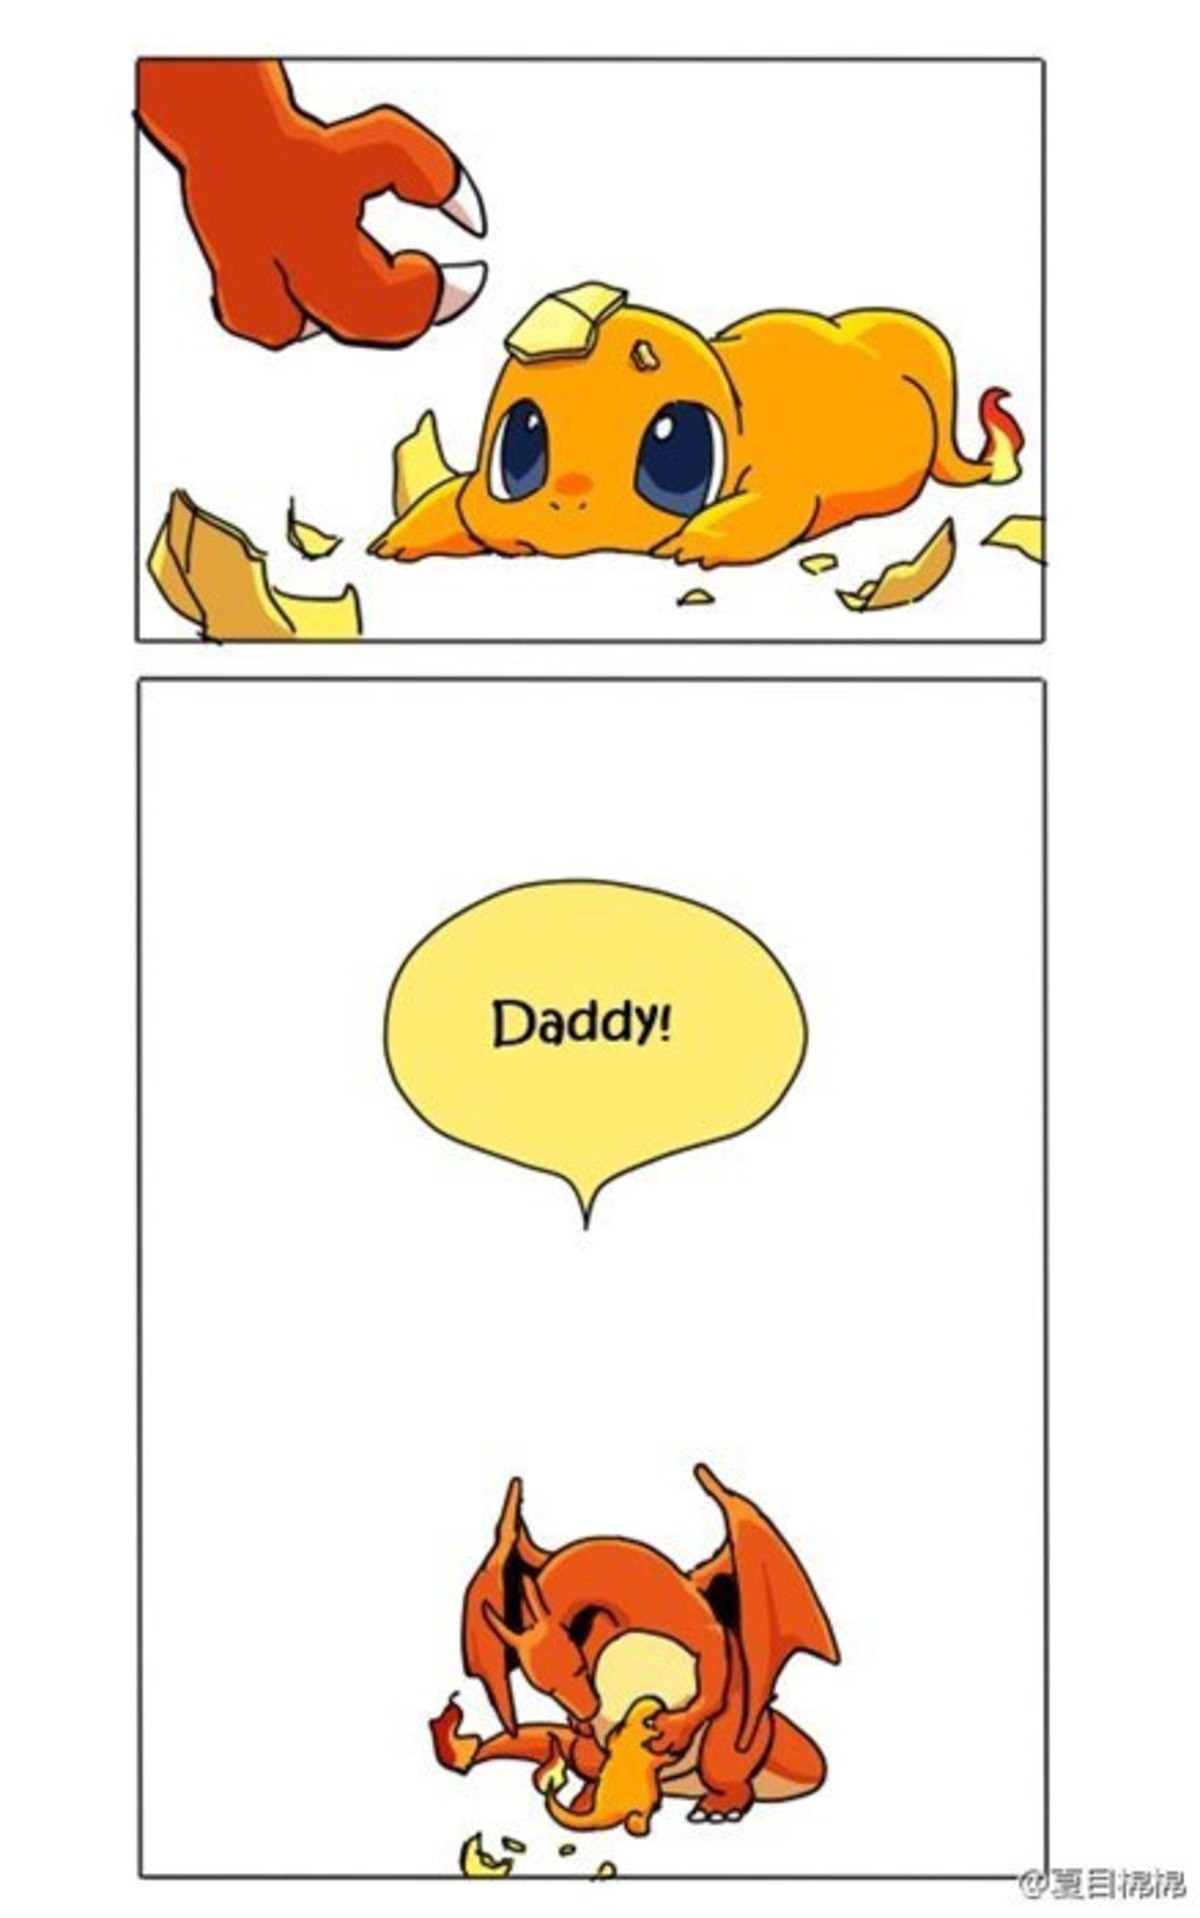 Charizard. Sauce: . ies my turn to protect. sometimes great tragedy provides us with the opportunity to be better.